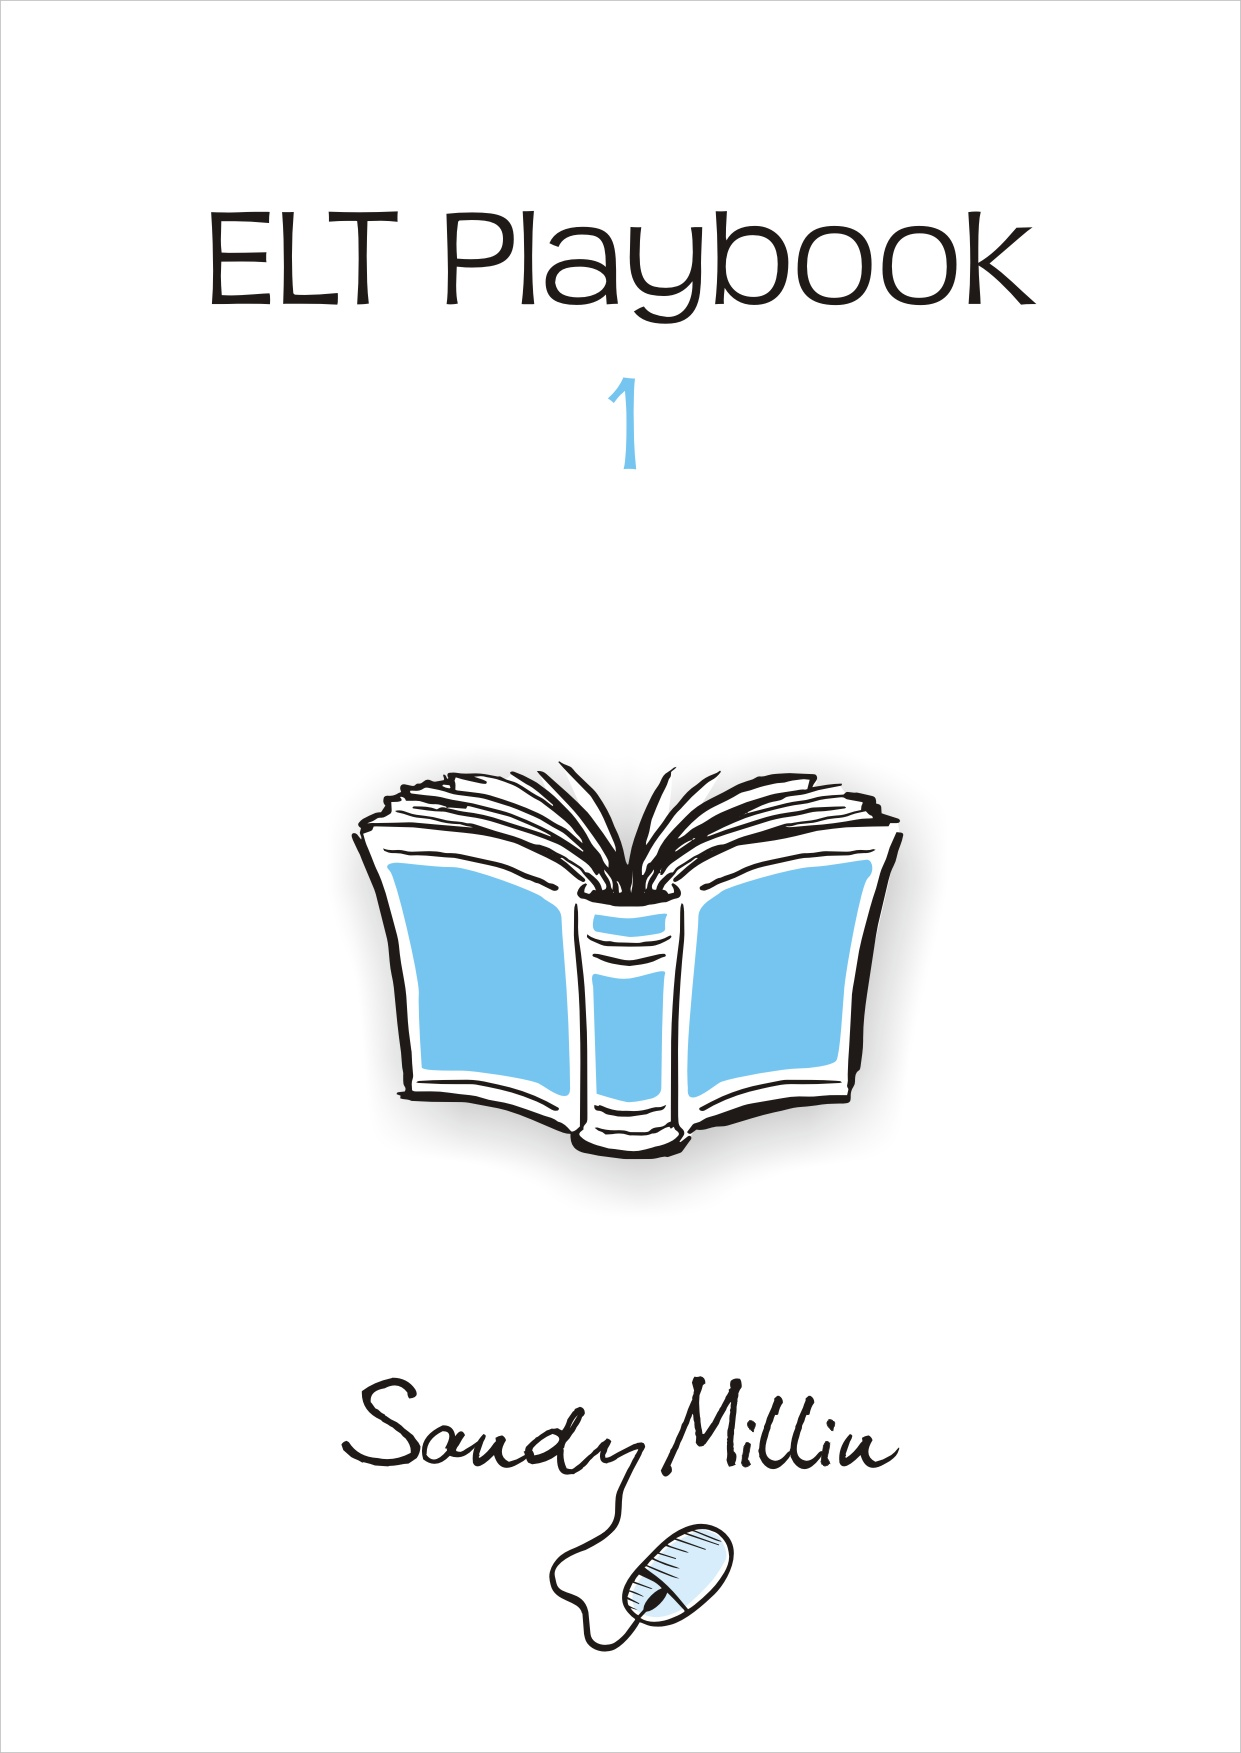 ELT Playbook 1 cover